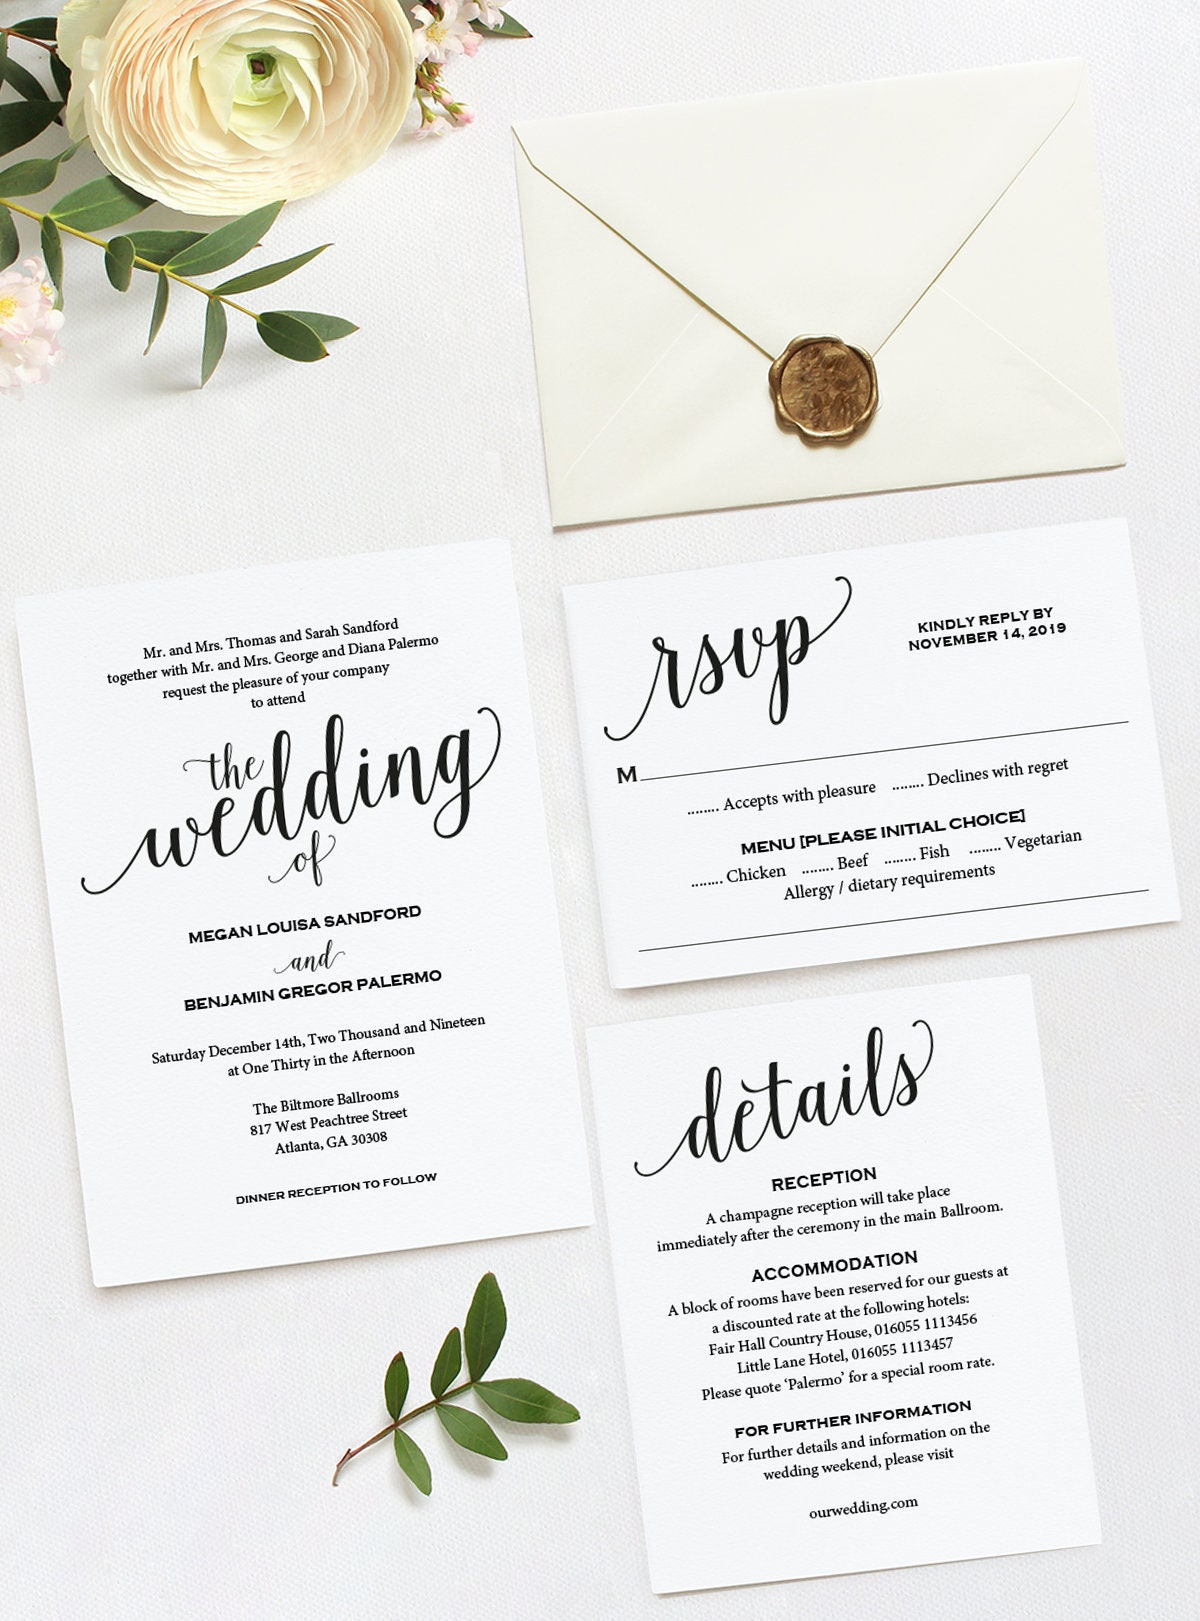 wedding invitation wedding invitation template wedding invite